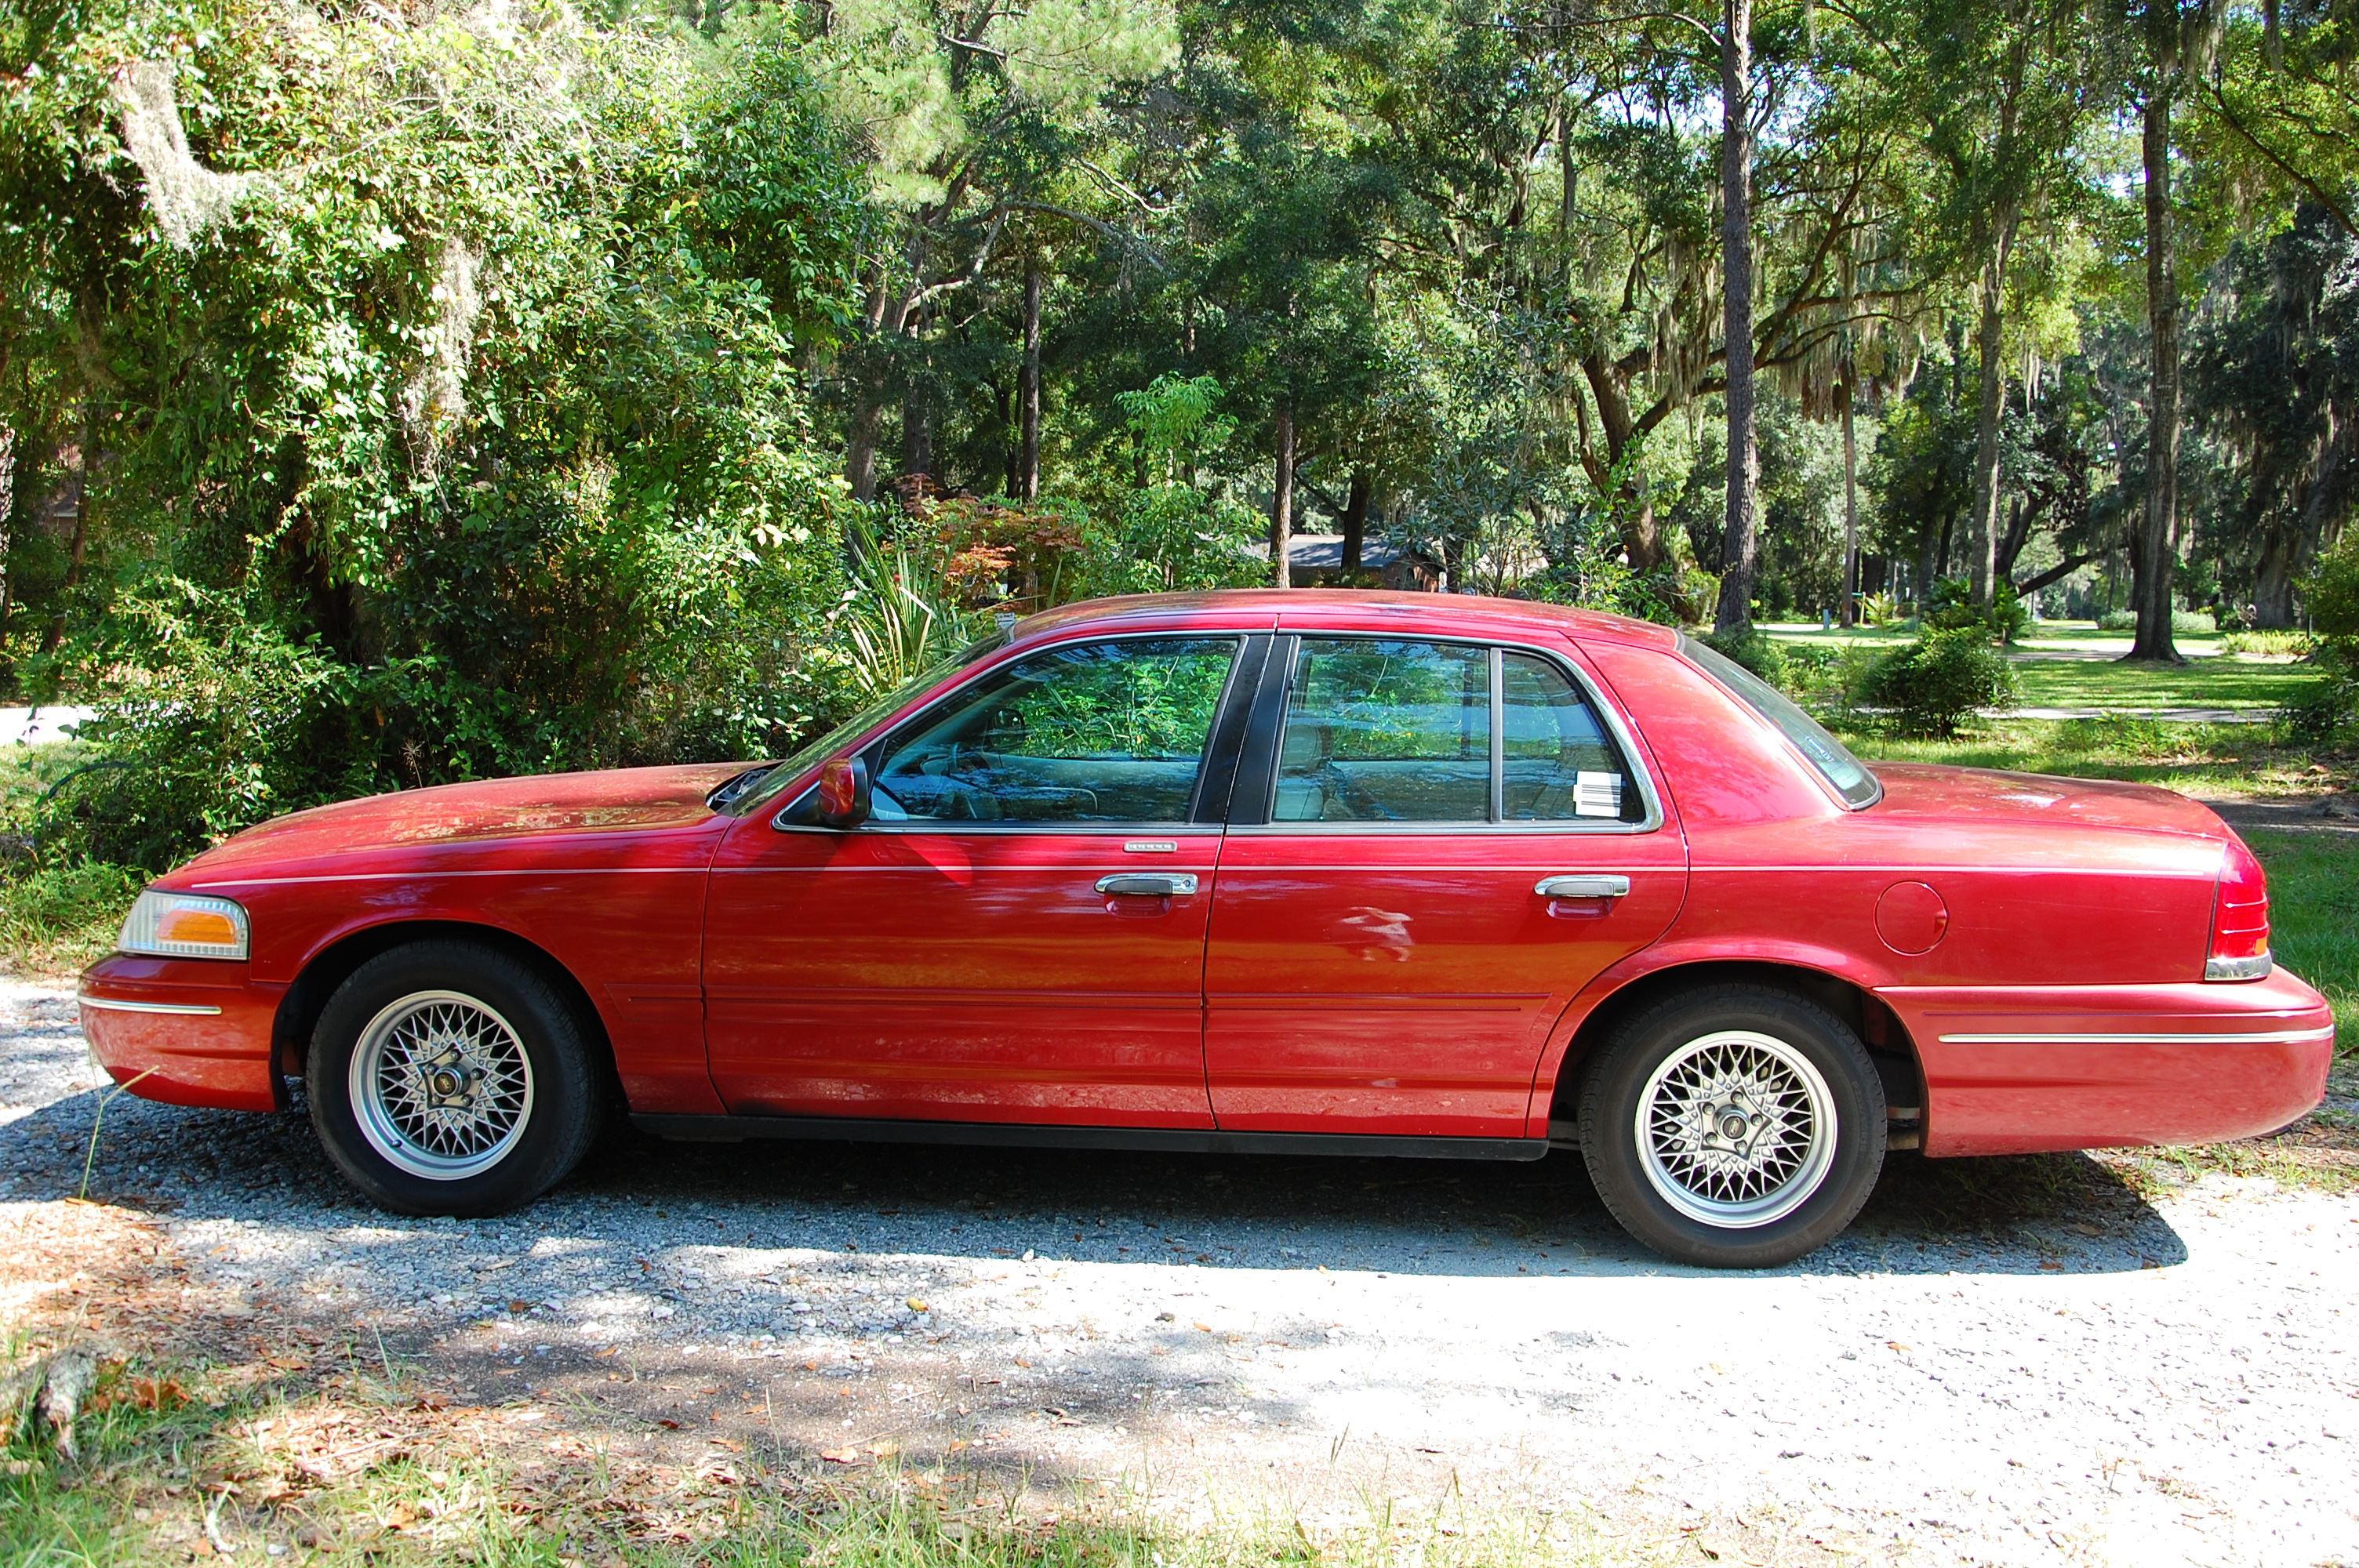 Ford Crown Victoria Simple English Wikipedia The Free